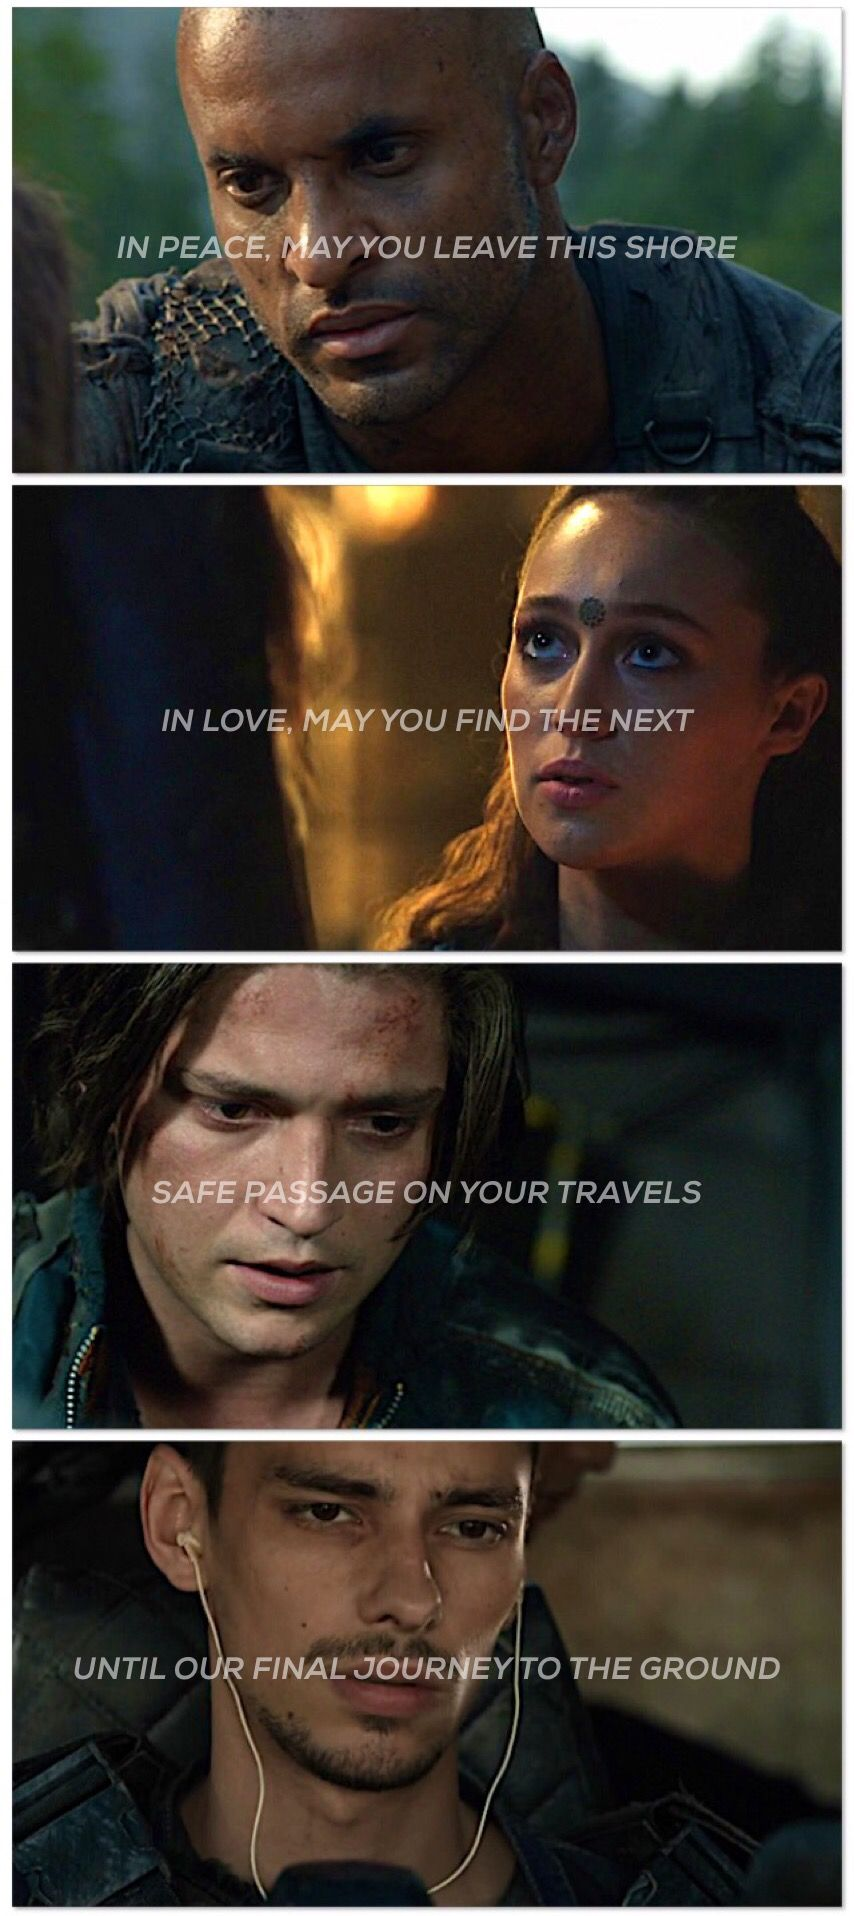 In peace, may you leave this shore. In love, may you find the next. Safe passage on your travels, until our final journey to the ground. May we meet again. | The 100